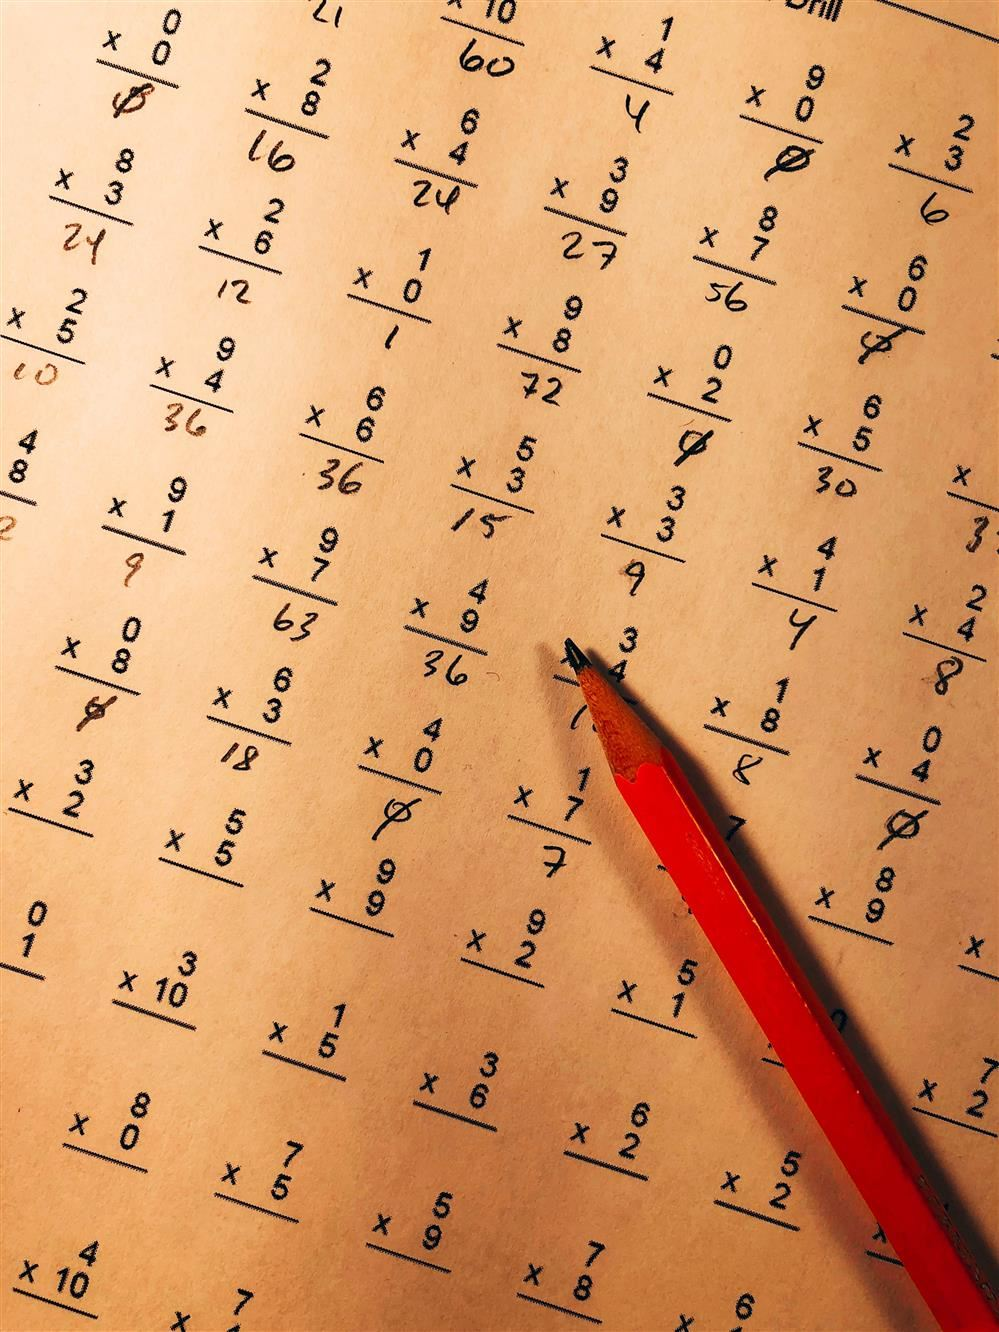 math quiz with red pencil